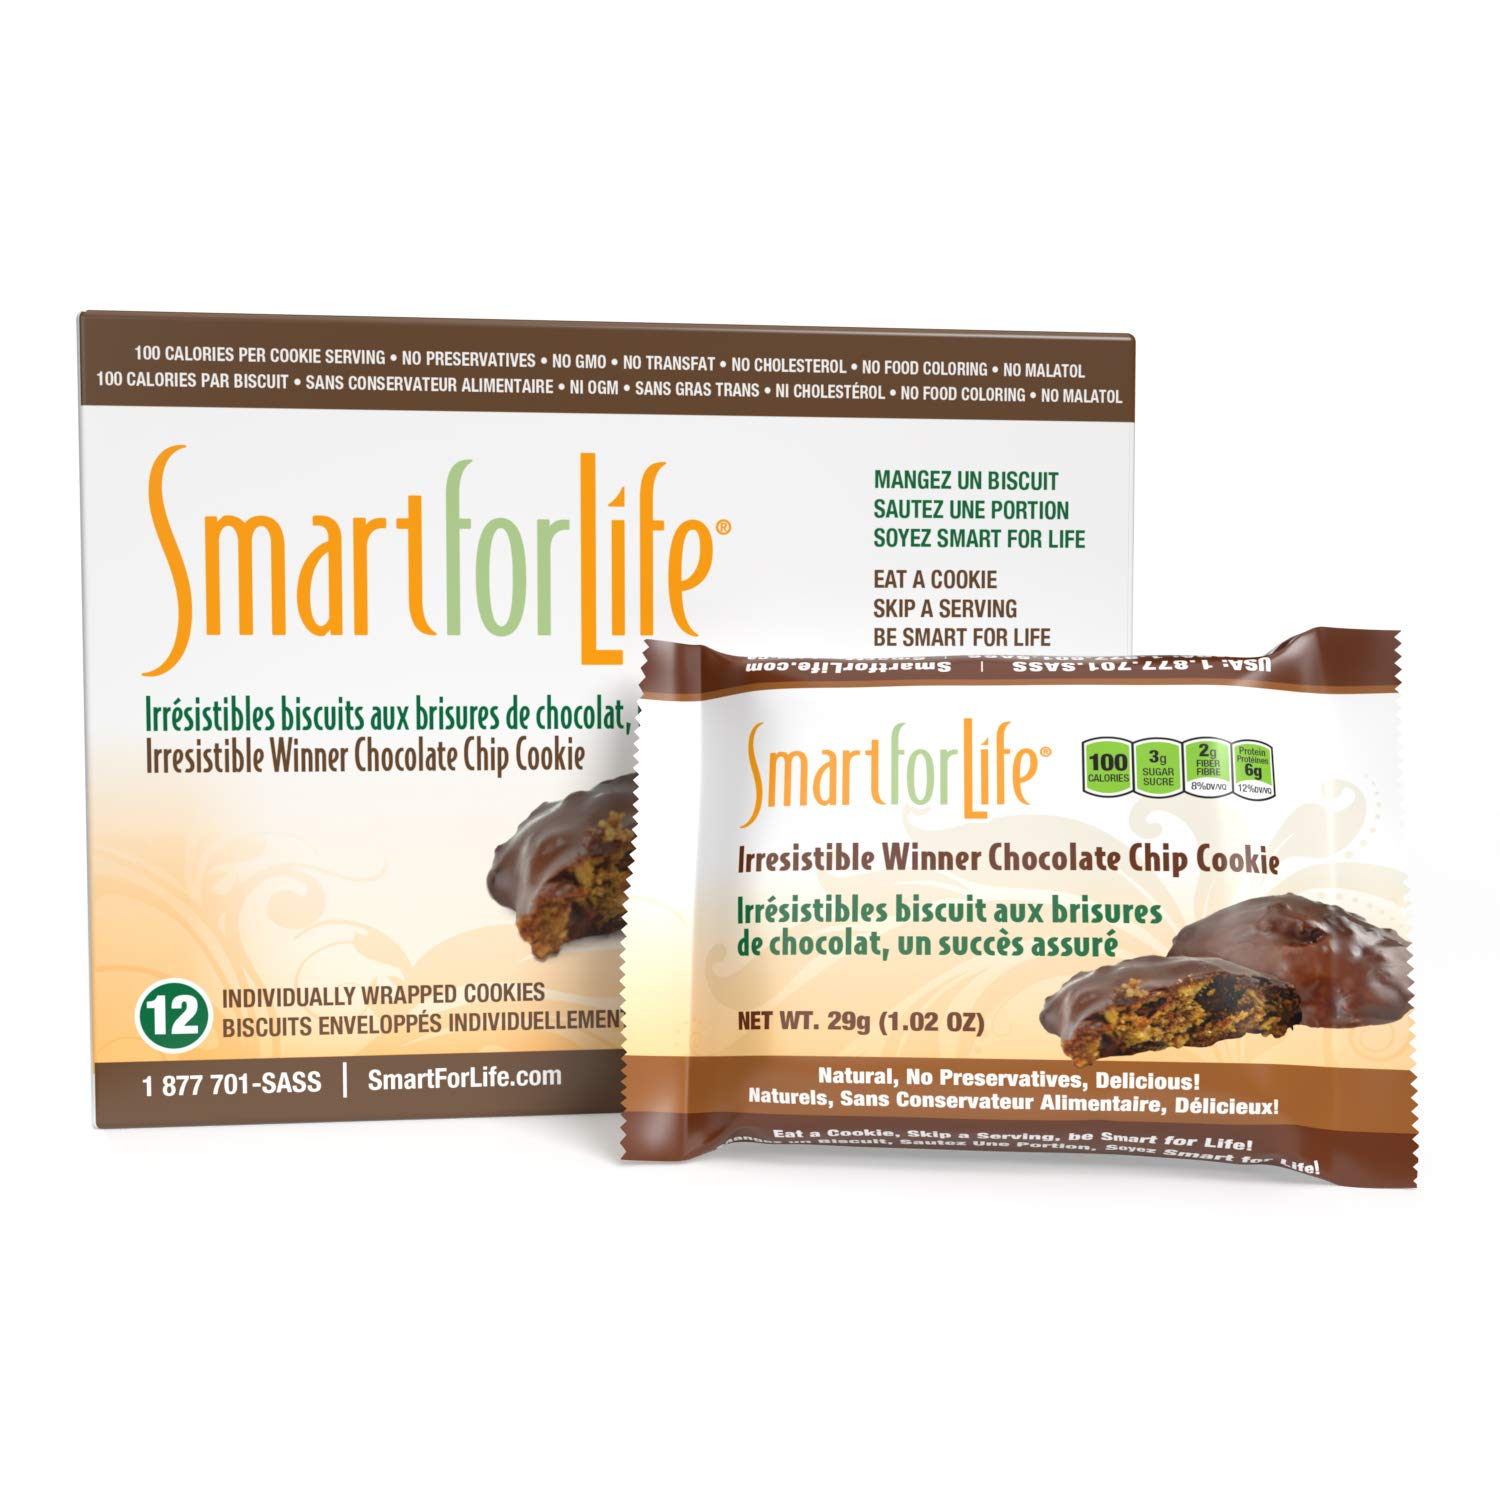 Smart for Life Chocolate Protein Irresistible Winner Cookies H Colorado Springs Mall Houston Mall -